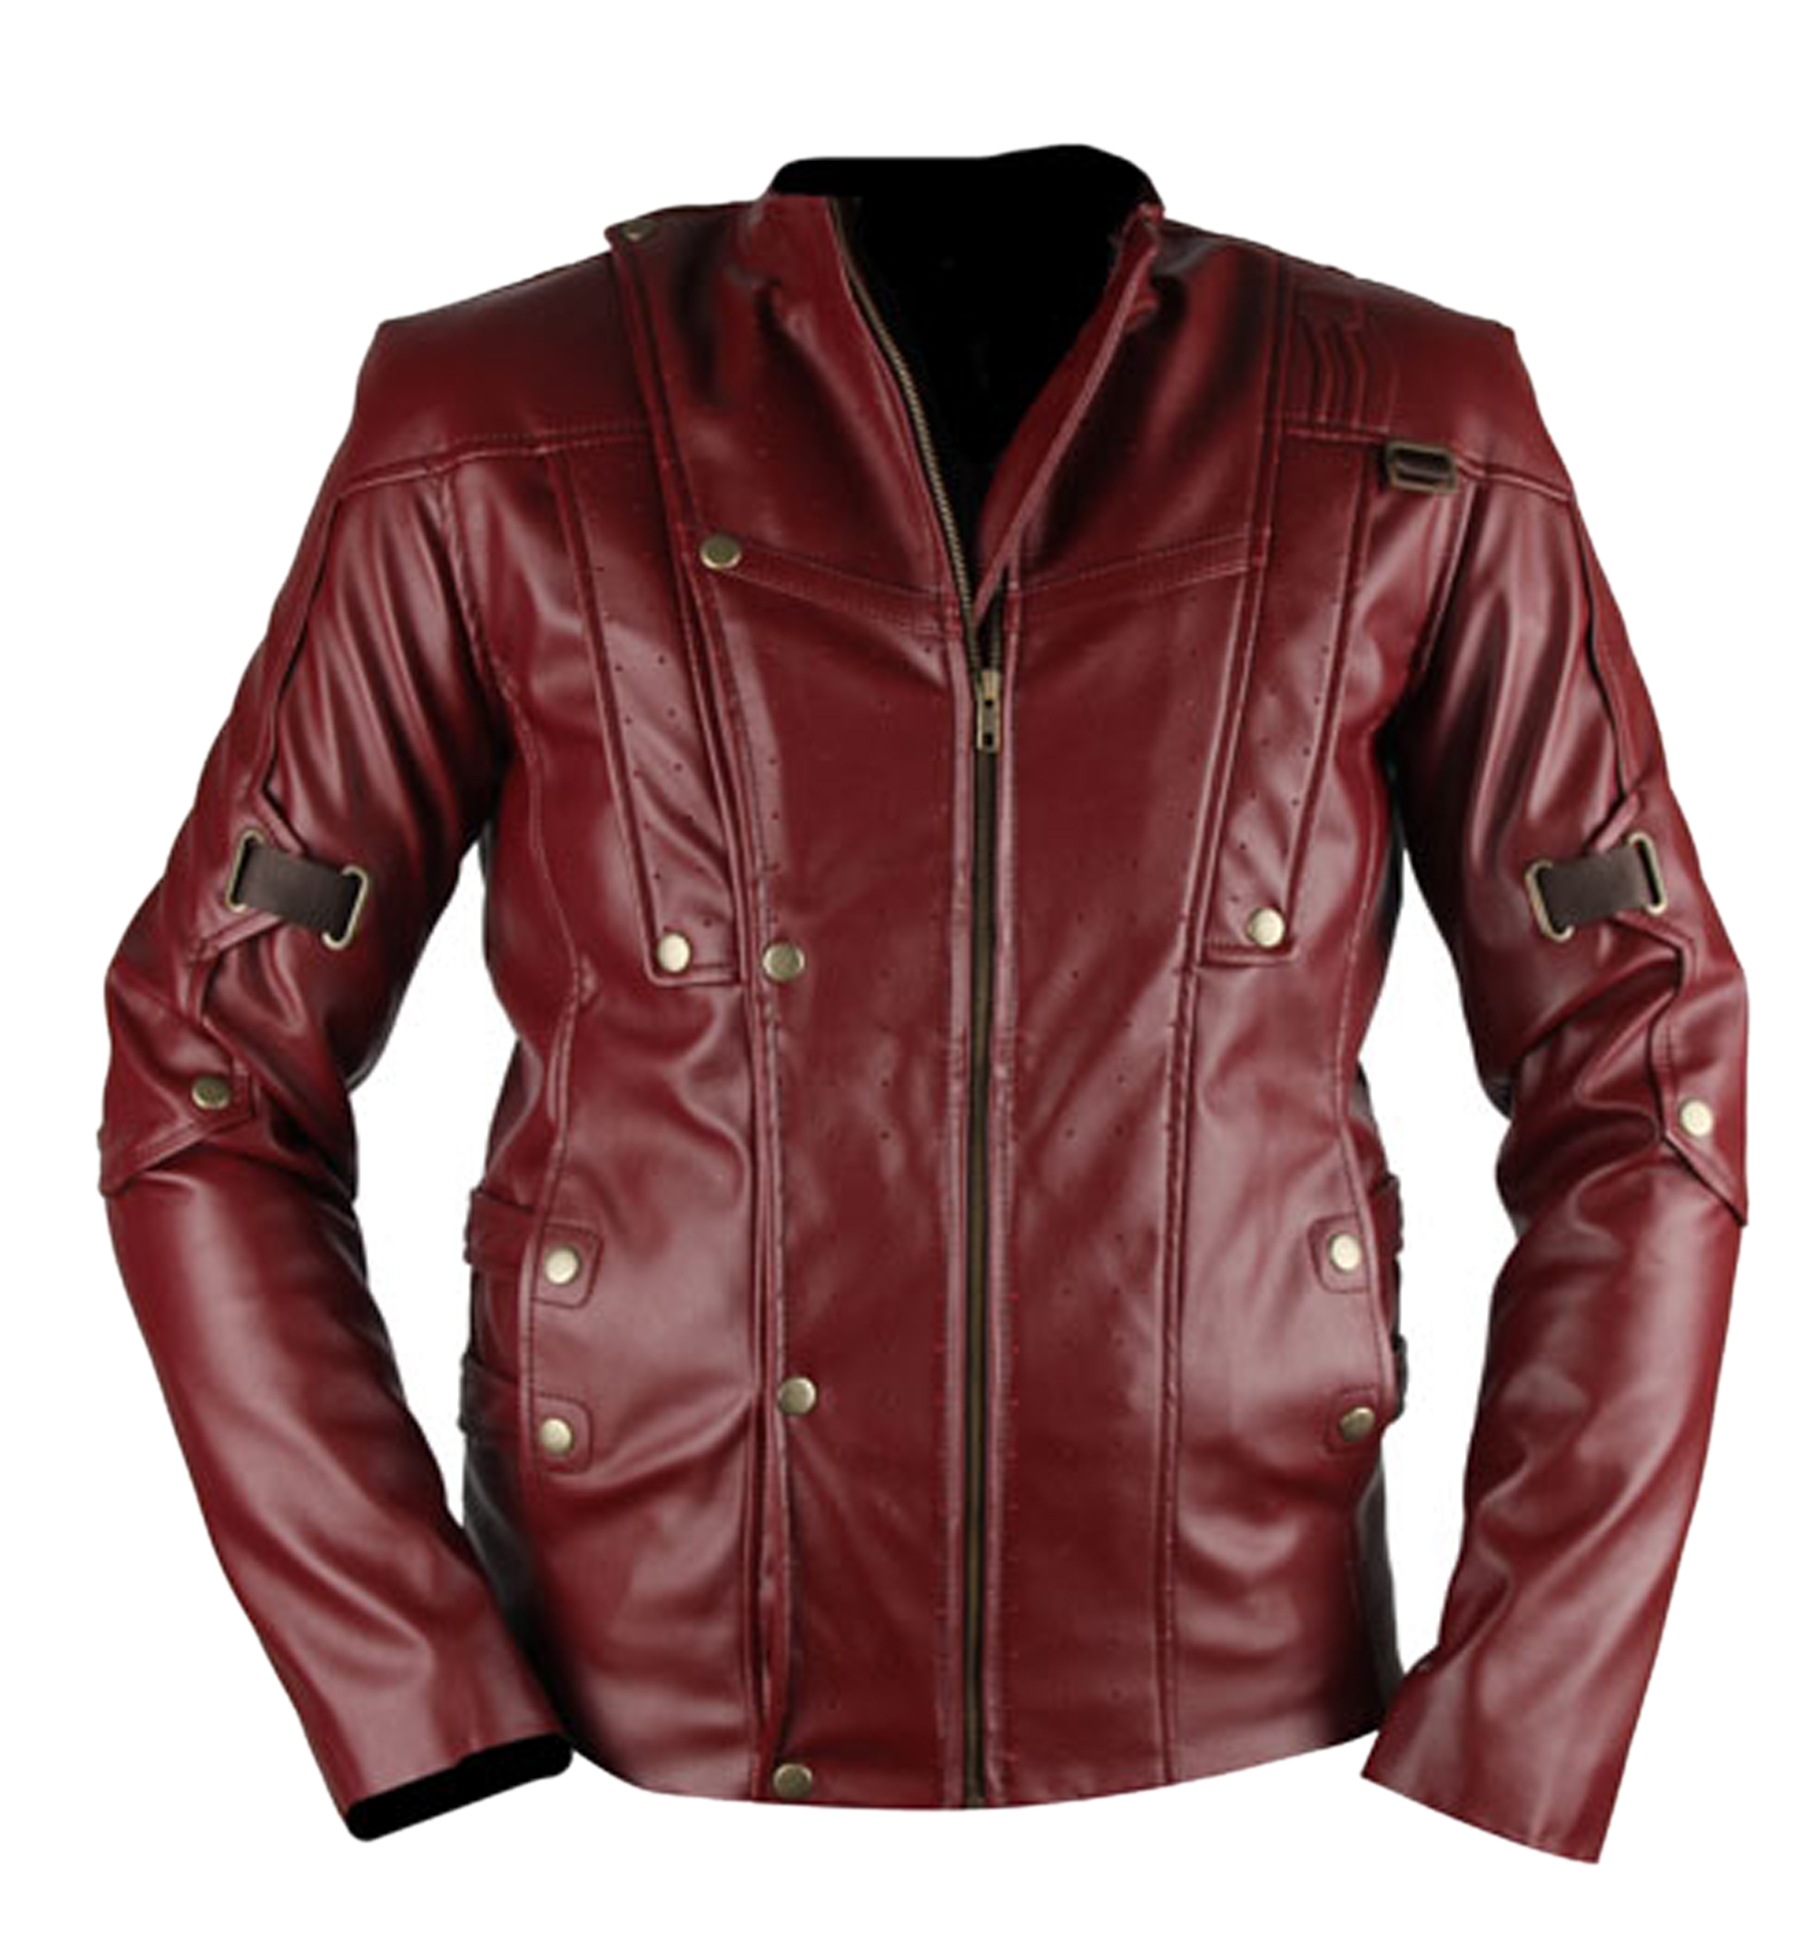 New-Star-Lord-Guardians-Of-The-Galaxy-Leather-Jacket-1-1